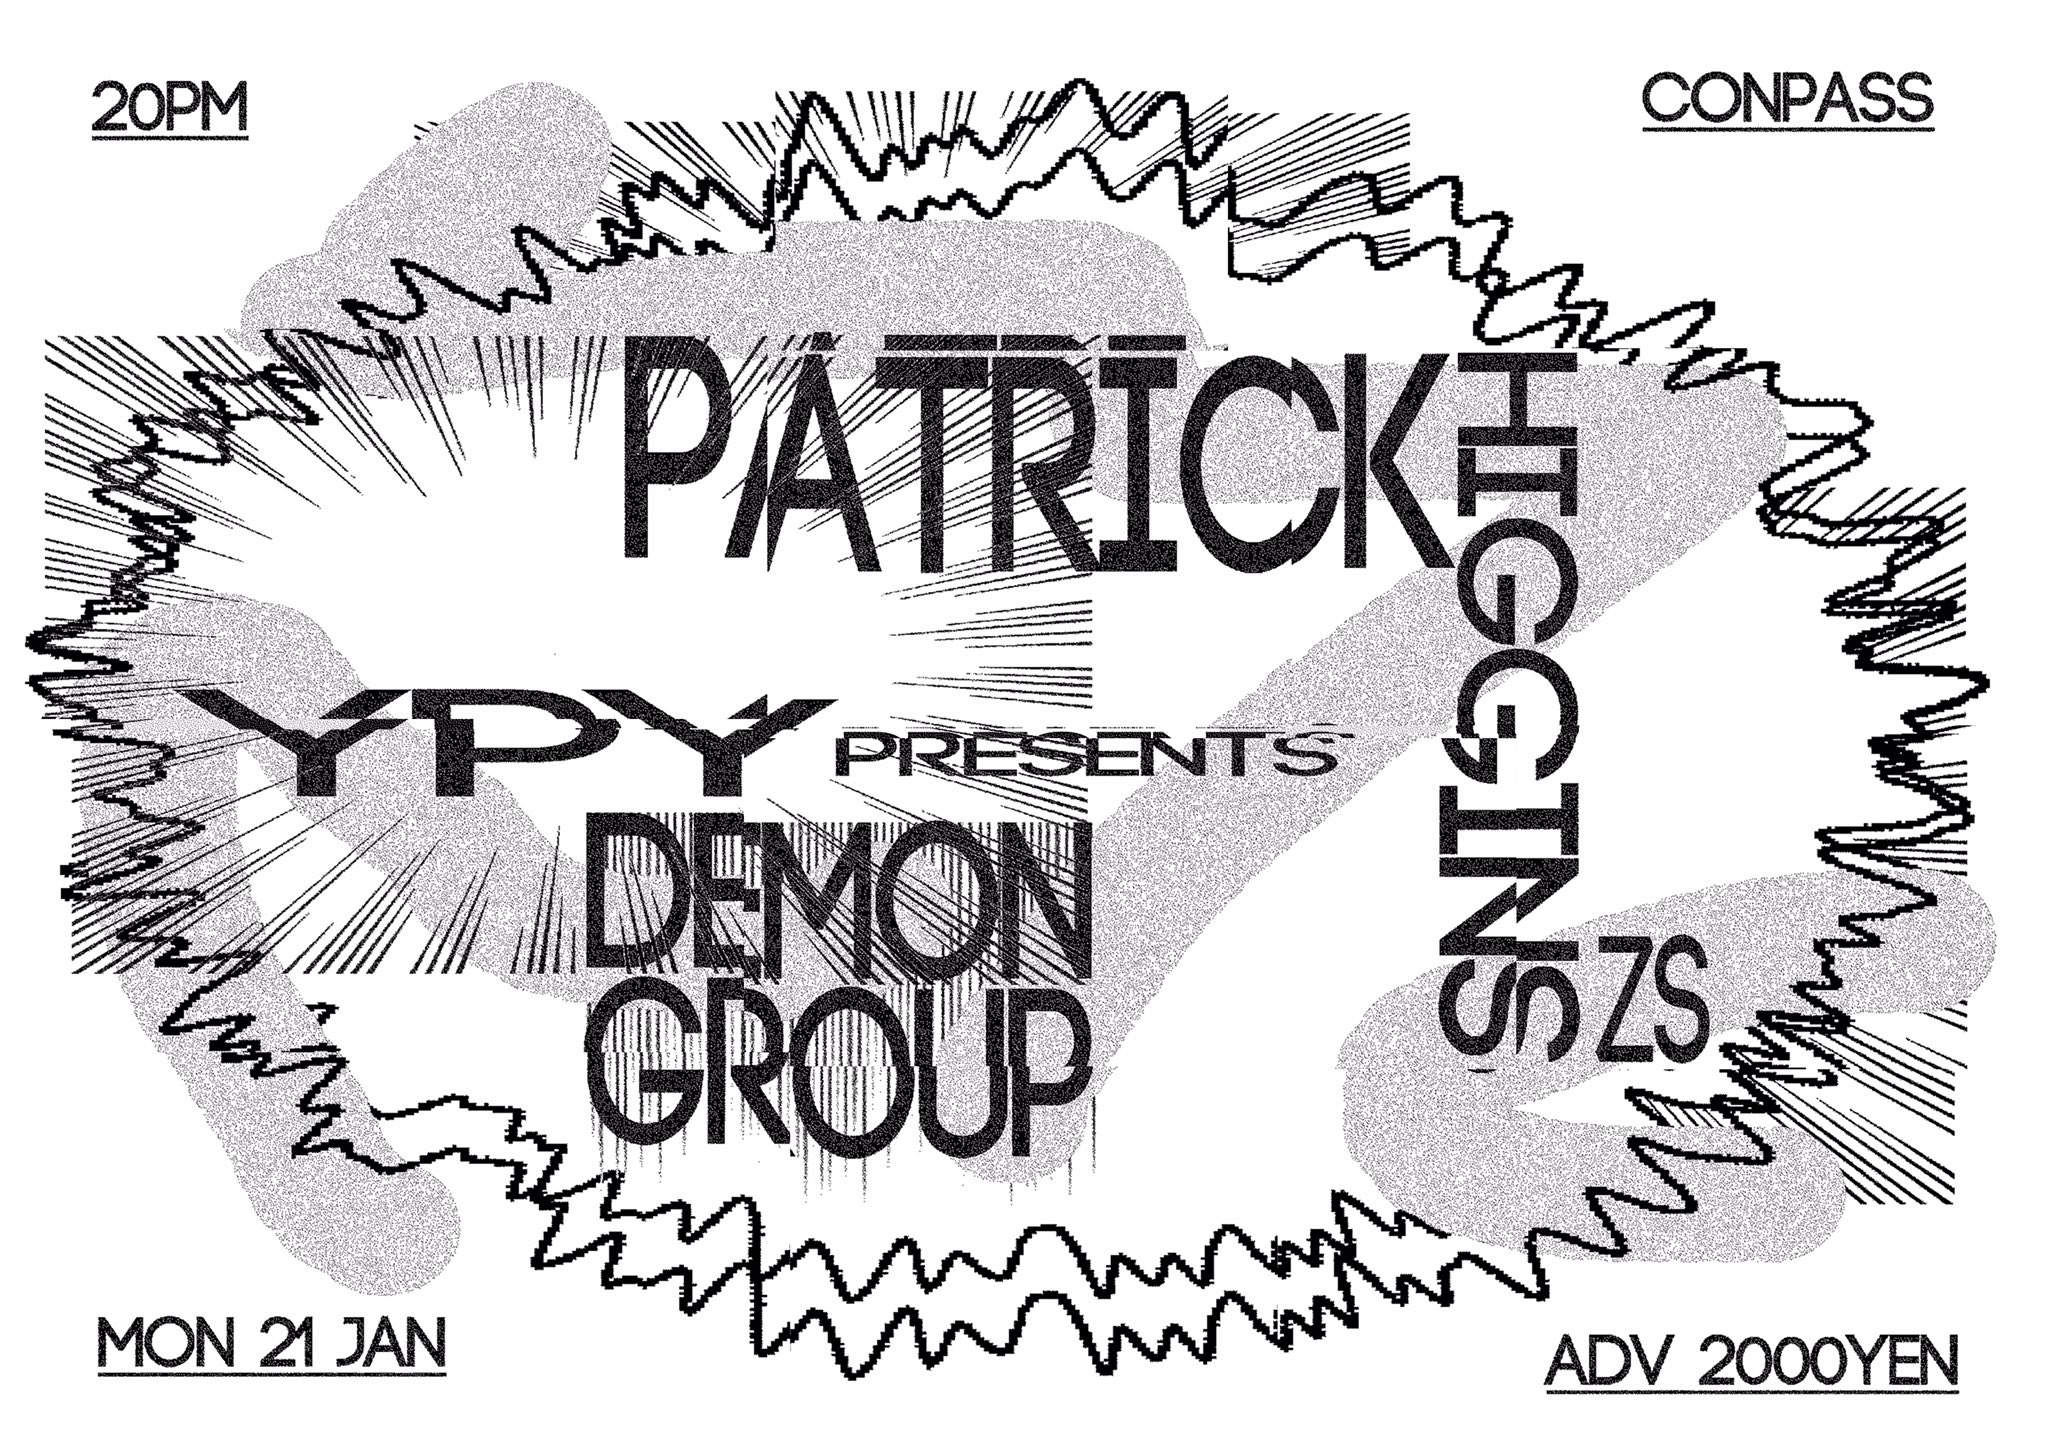 YPY presents DEMON GROUP / PATRICK HIGGINS(ZS)